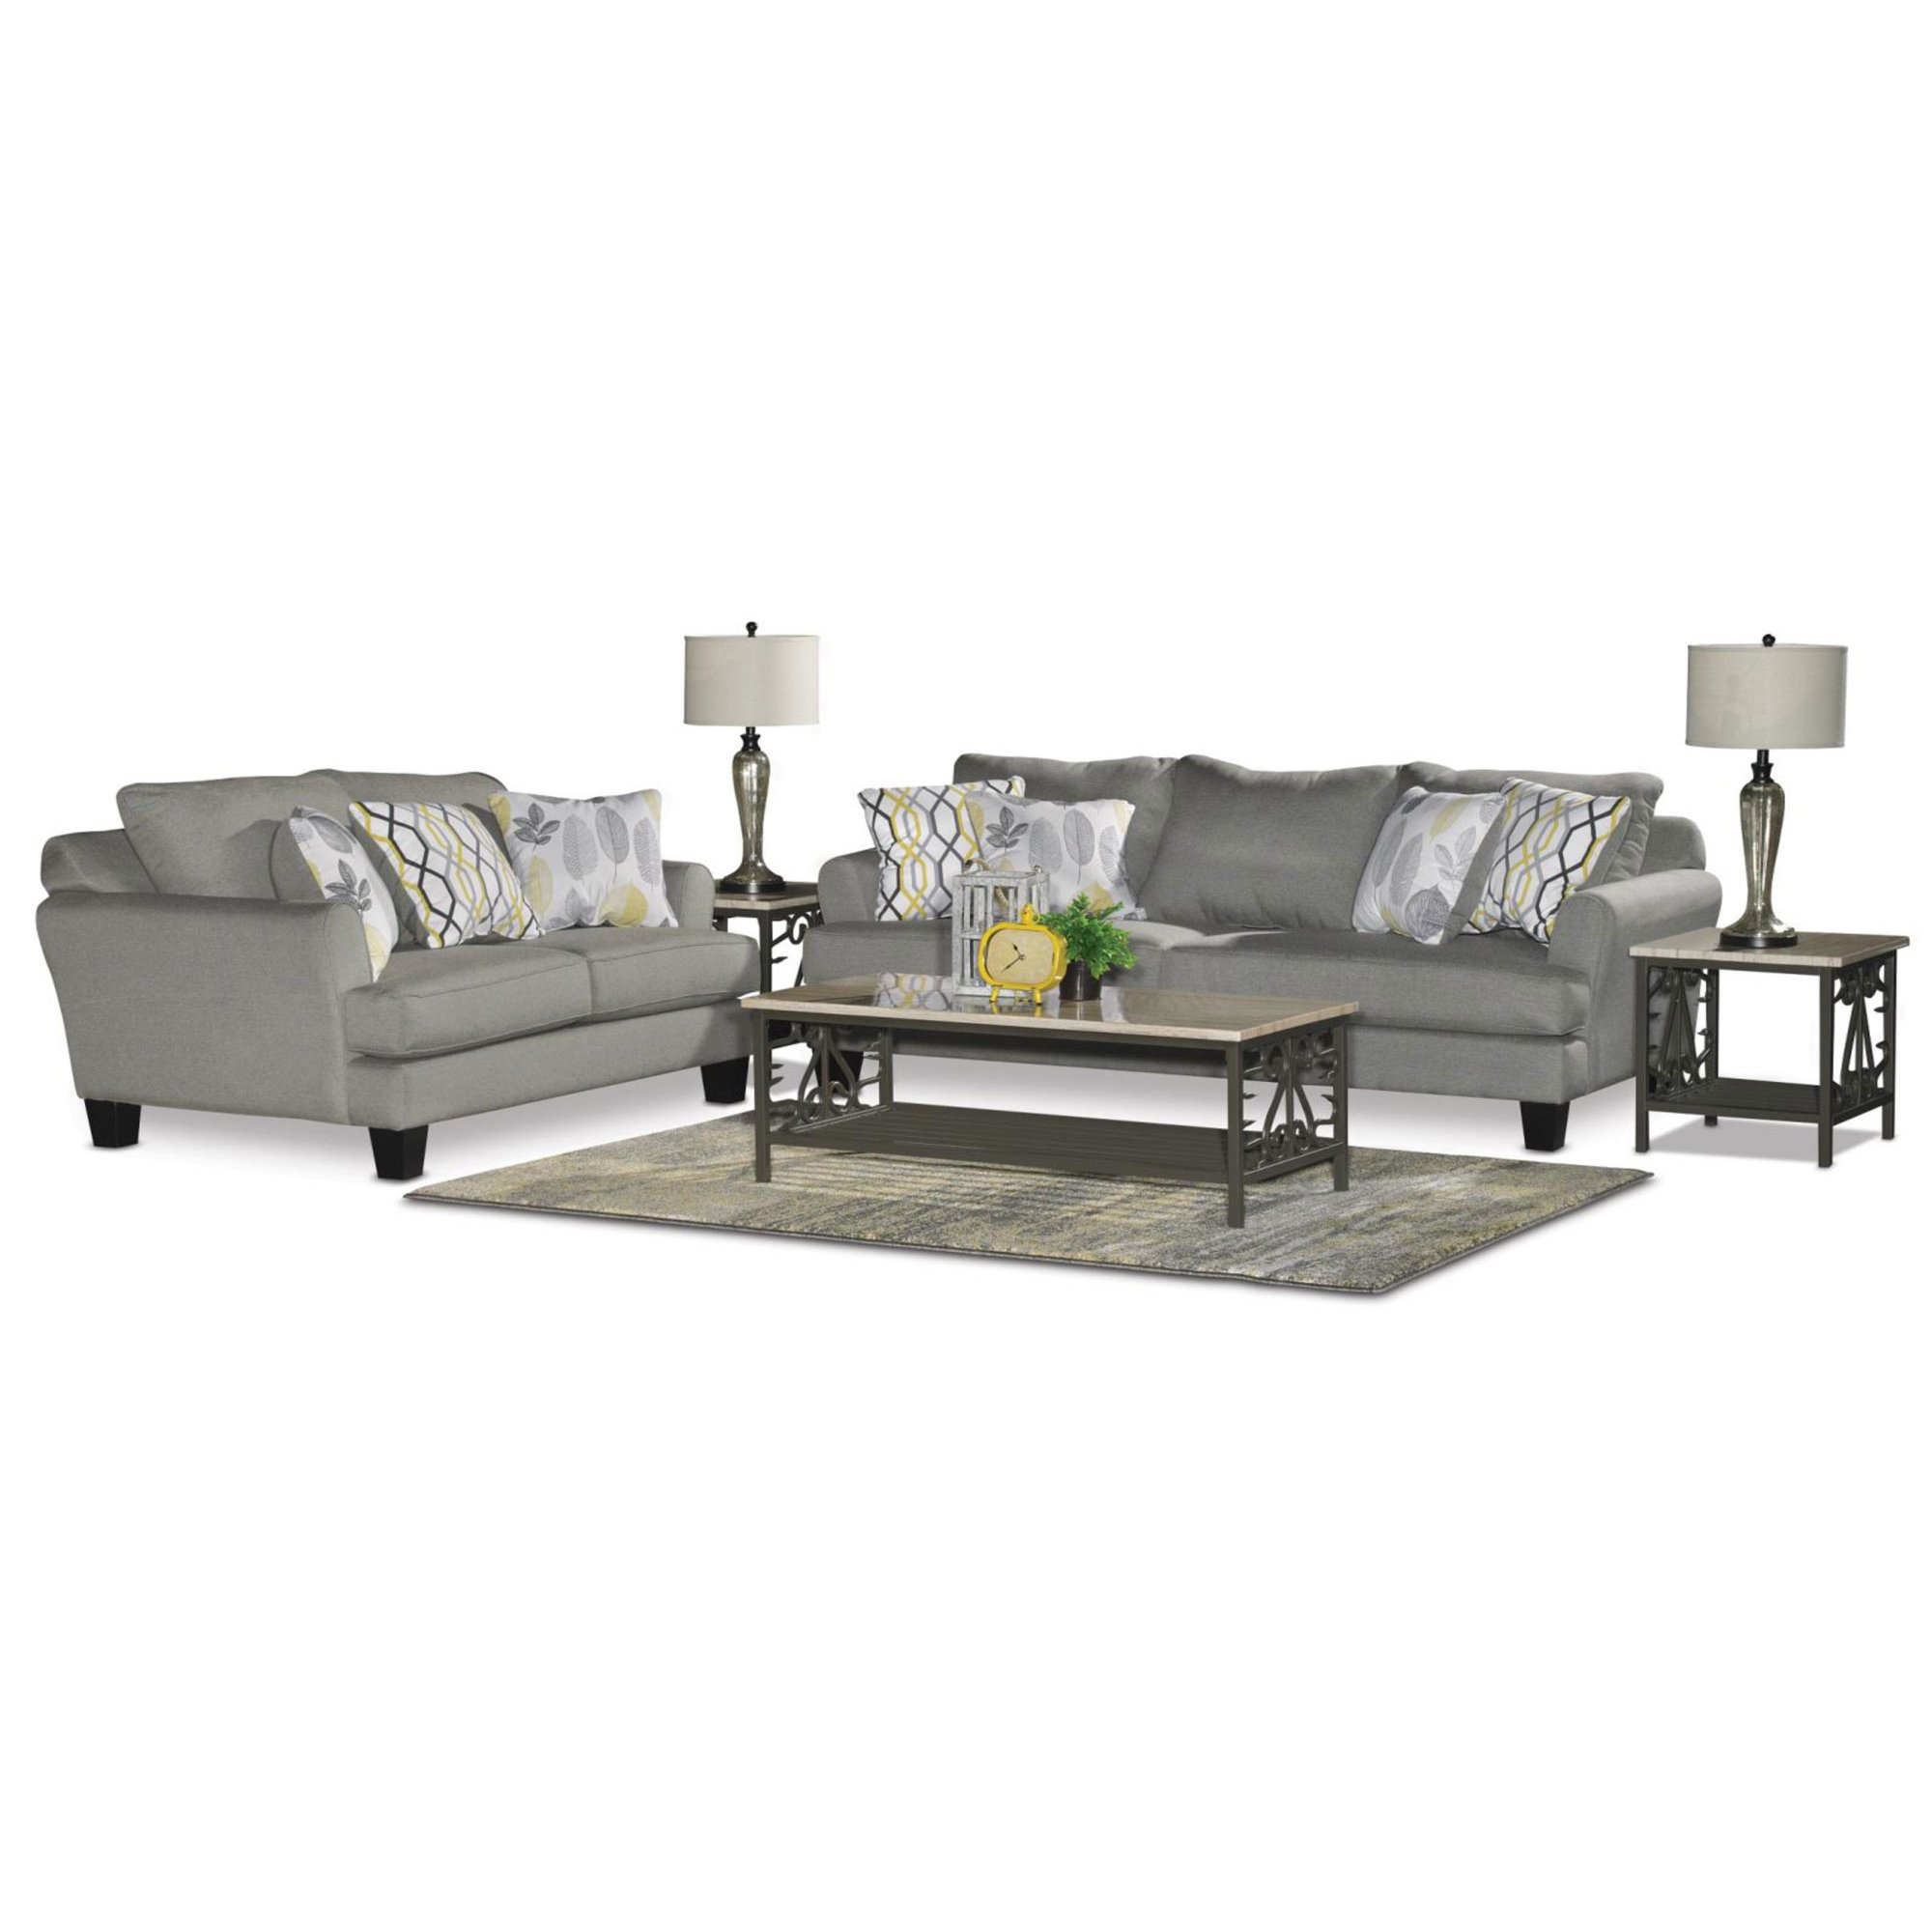 Attirant Casual Contemporary Gray 7 Piece Living Room Set   Bryn | RC Willey  Furniture Store